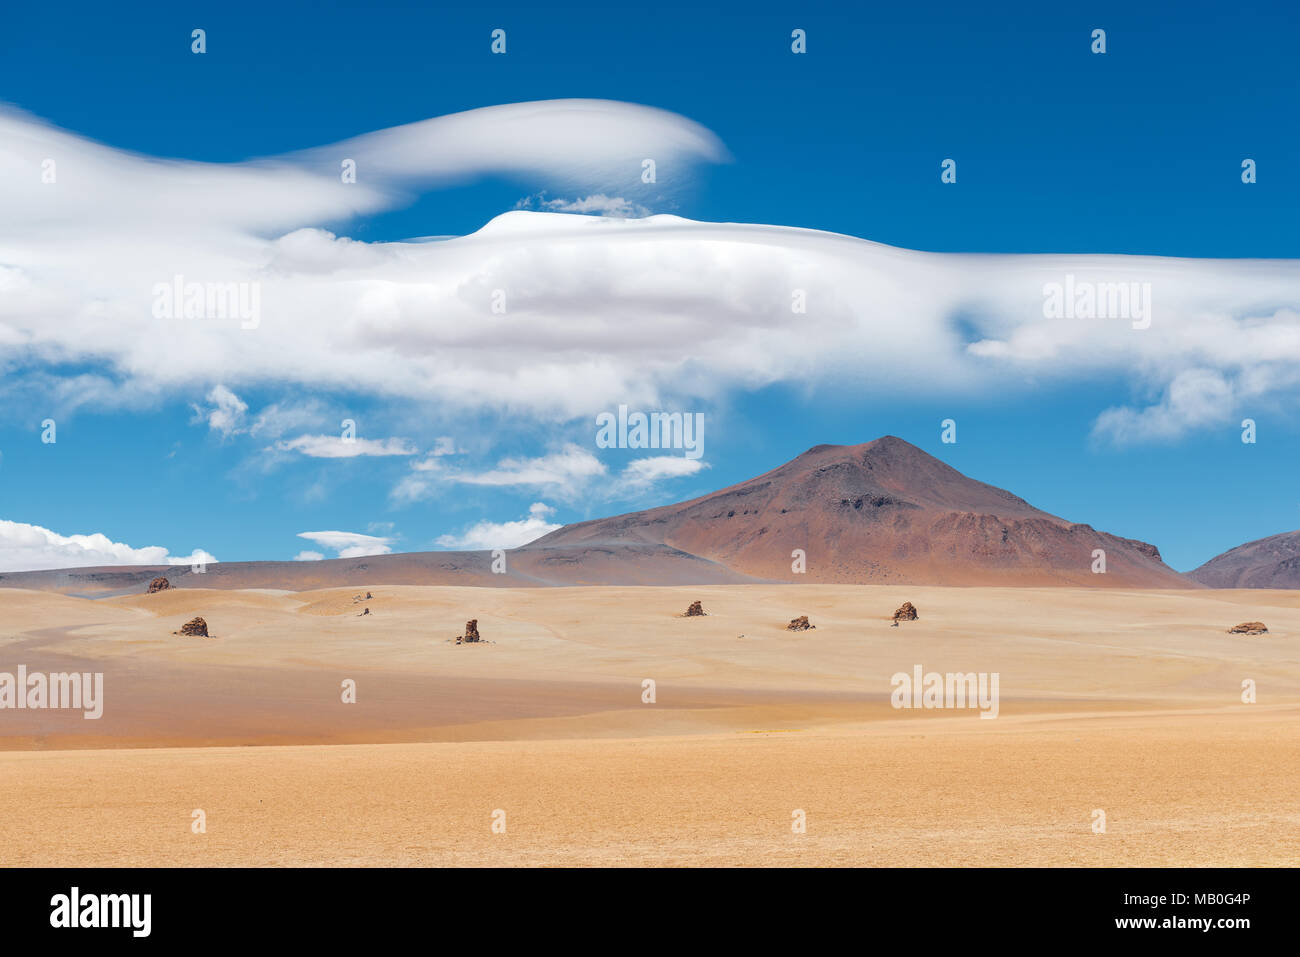 The Dali Desert near the Uyuni Salt Flat (Salar de Uyuni) with rock formations and clouds that could have been drawn by the master himself, Bolivia. - Stock Image